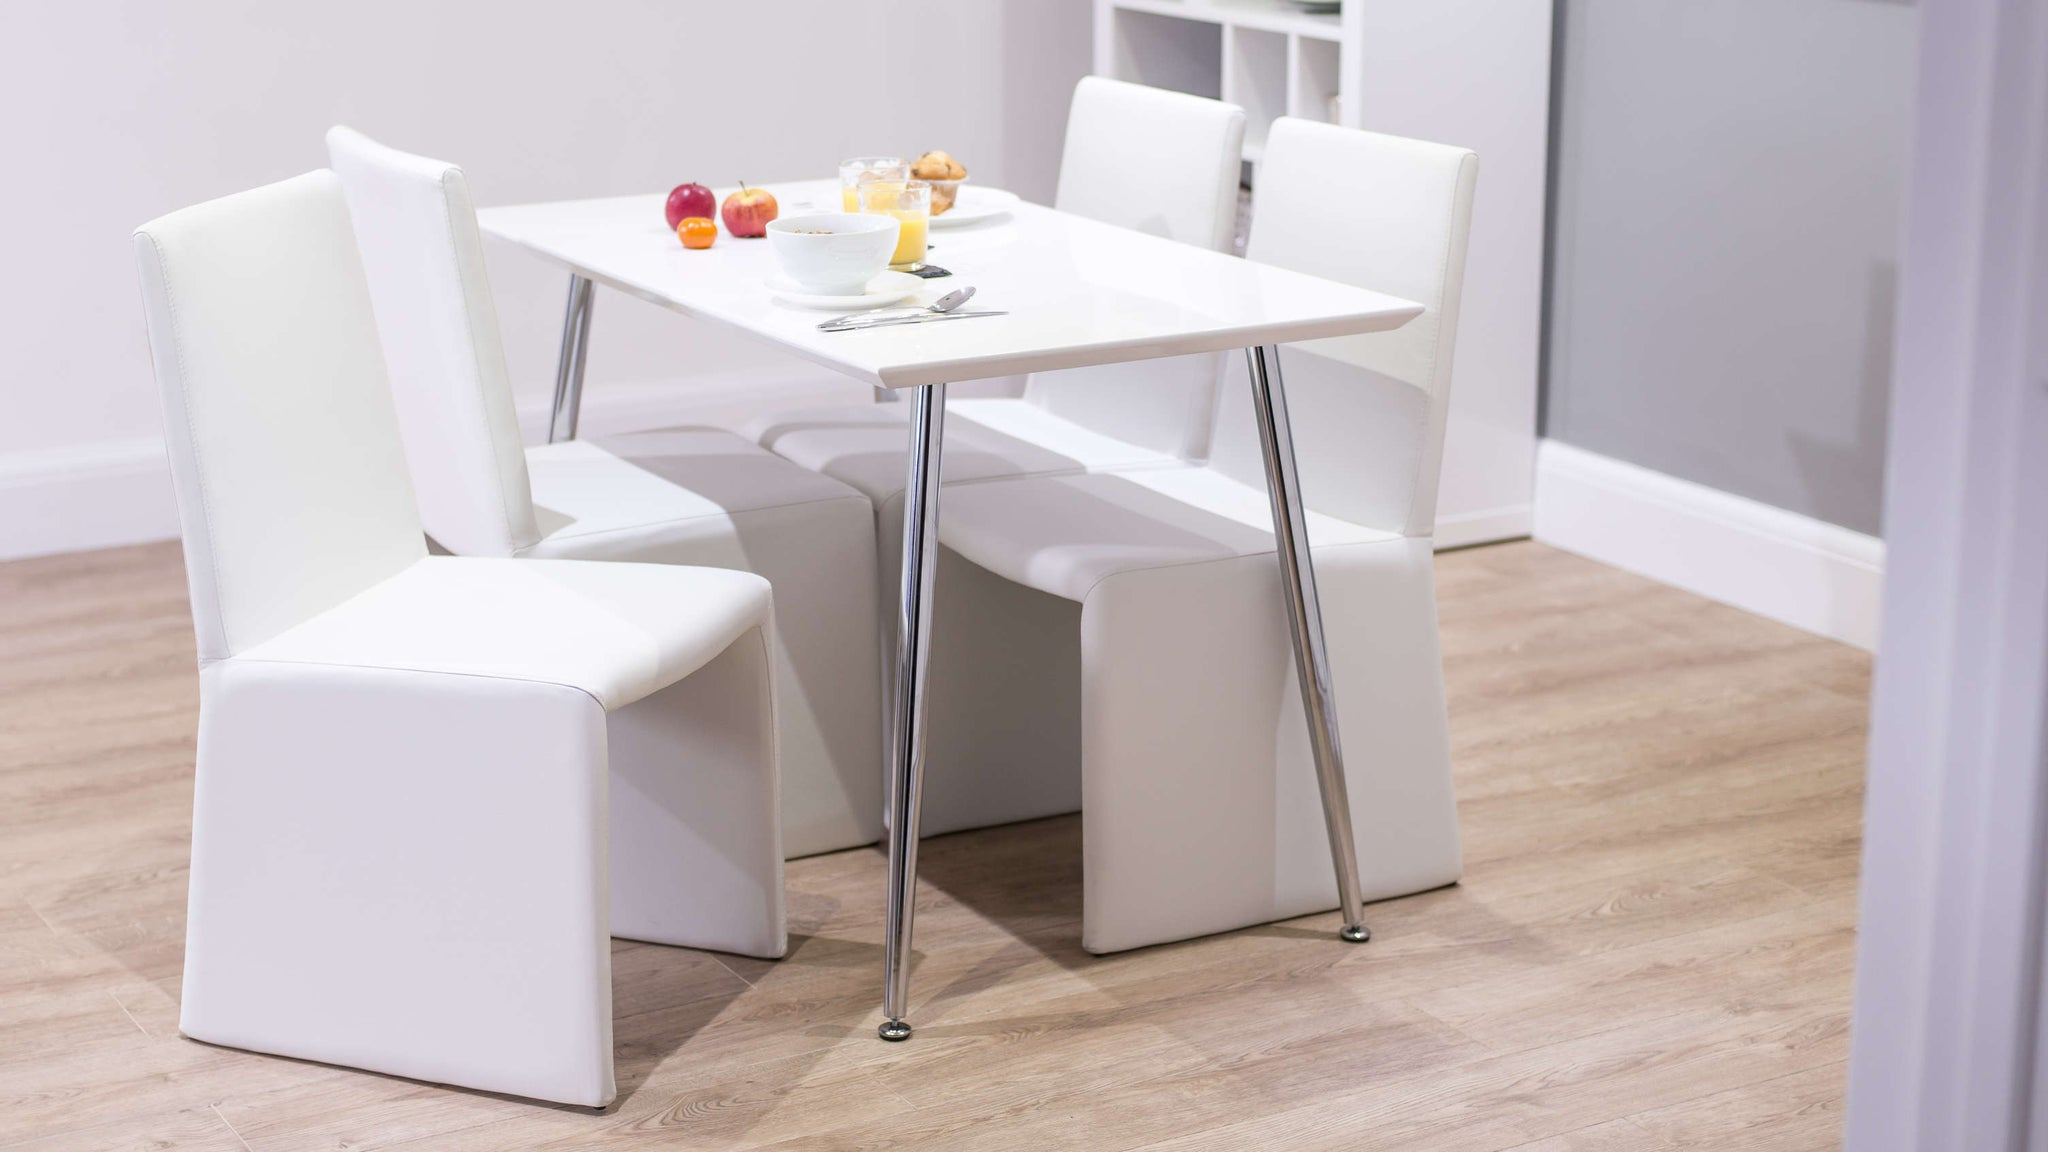 Comfortable White Dining Chairs and Small White Dining Table